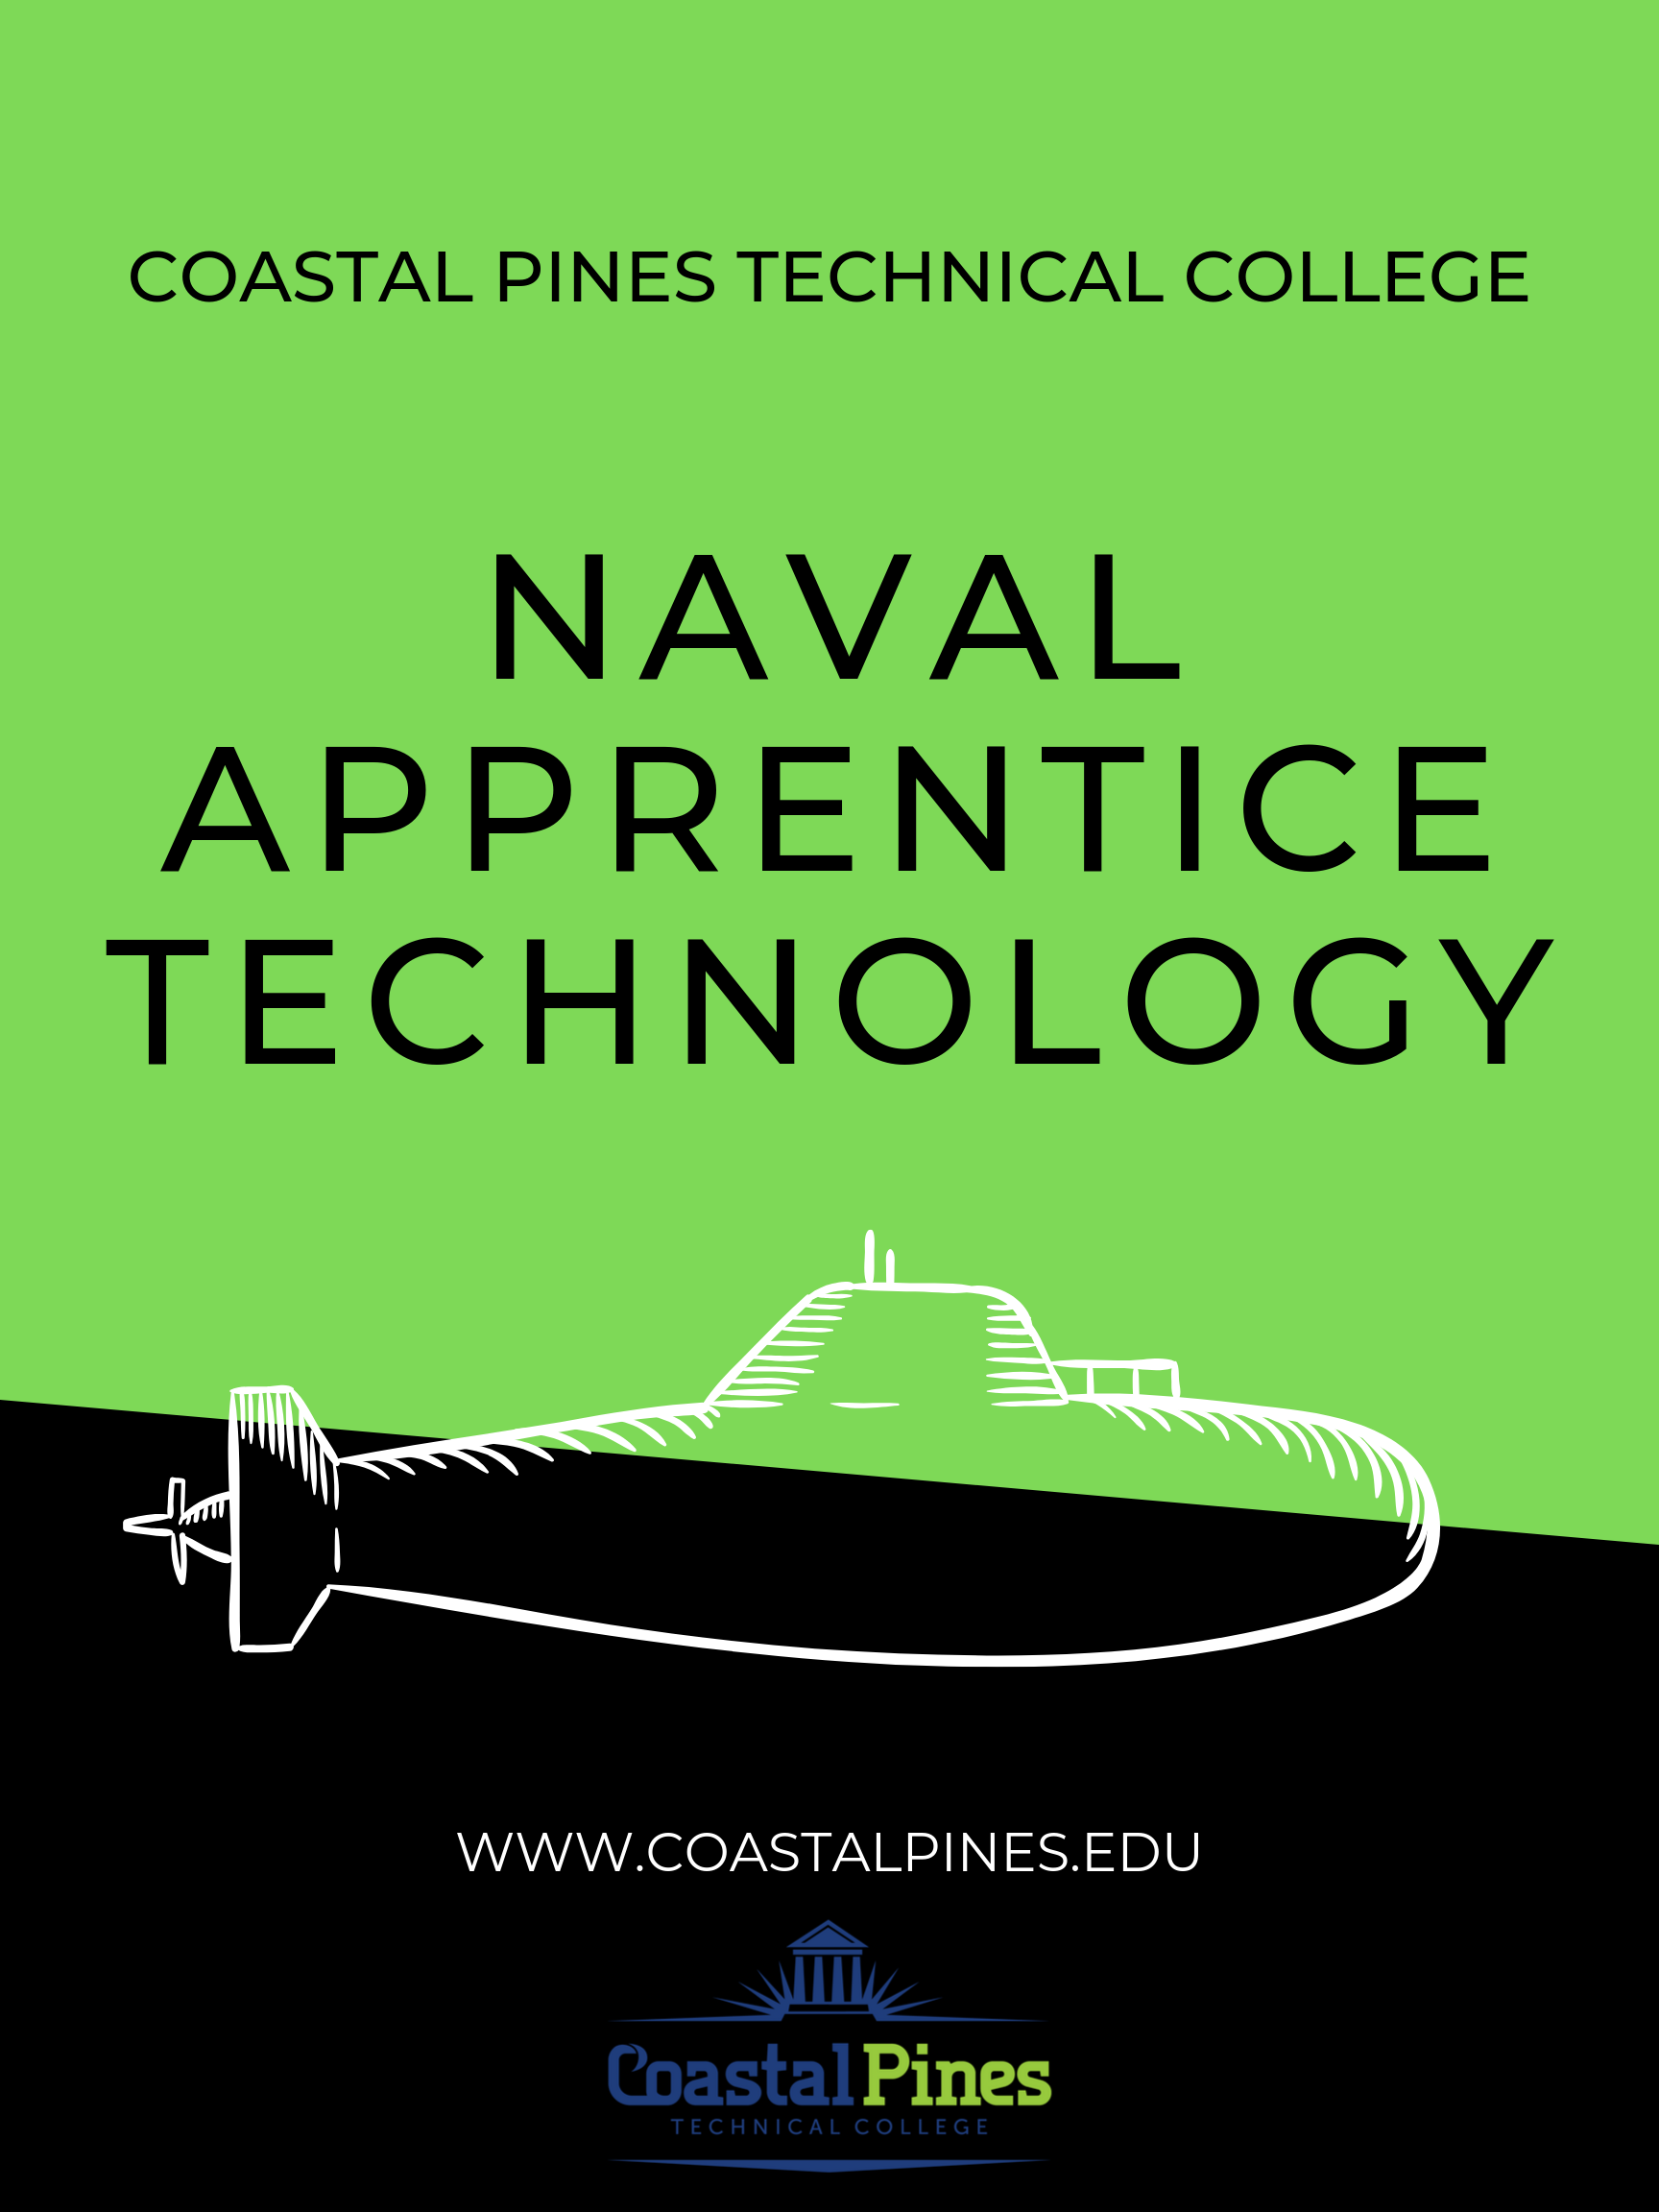 Naval Apprentice Technology Program Poster